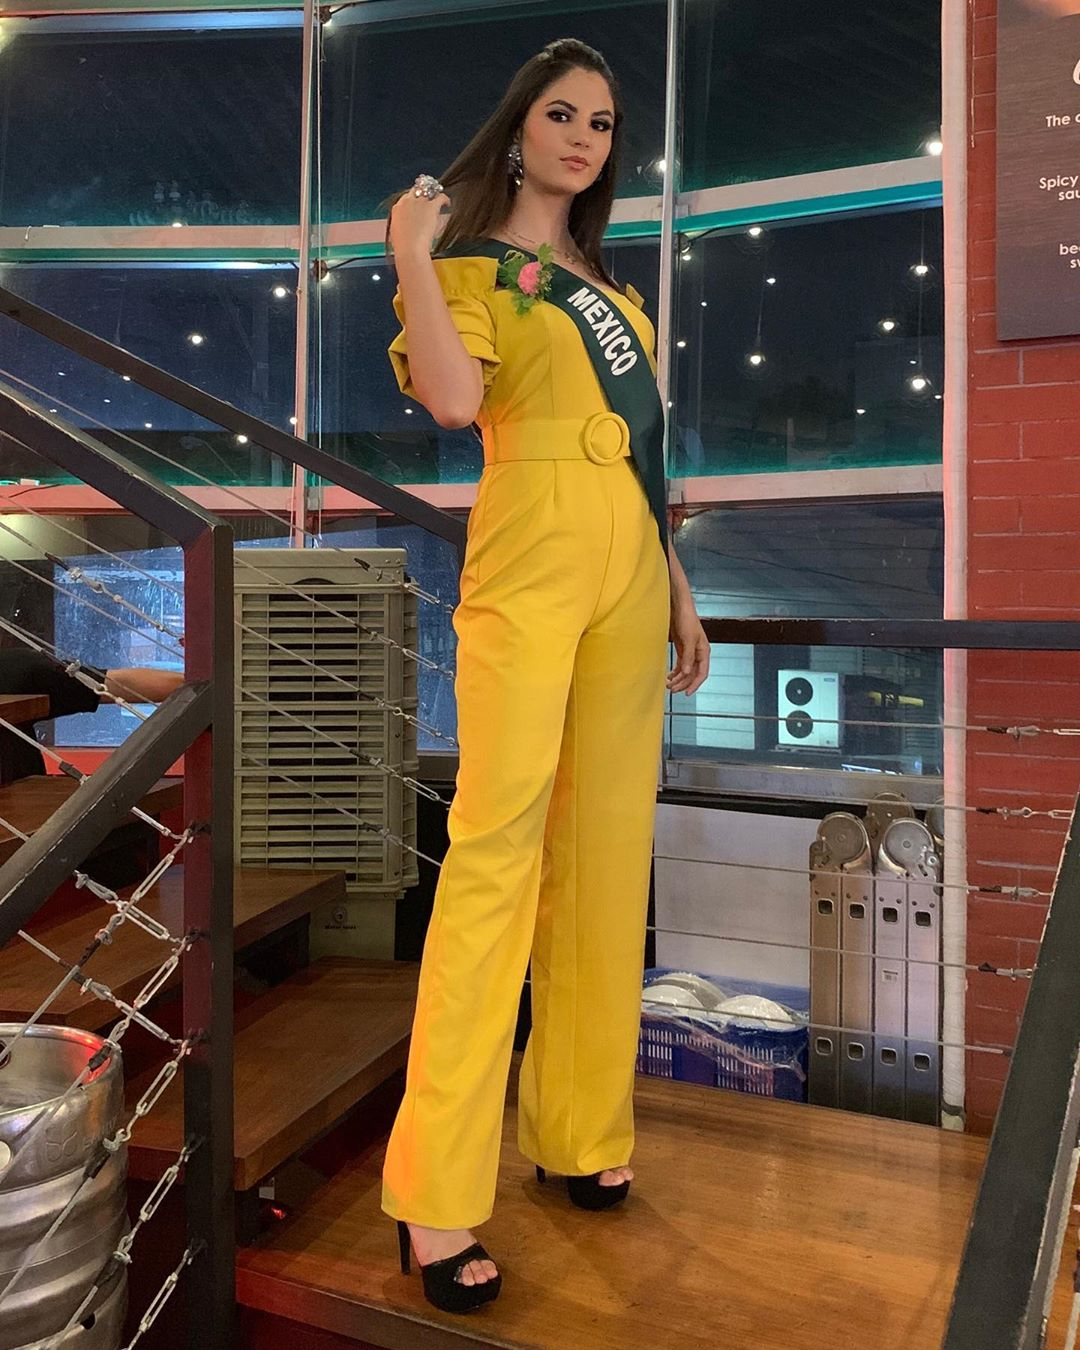 hilary islas, miss earth mexico 2019. - Página 14 71837910